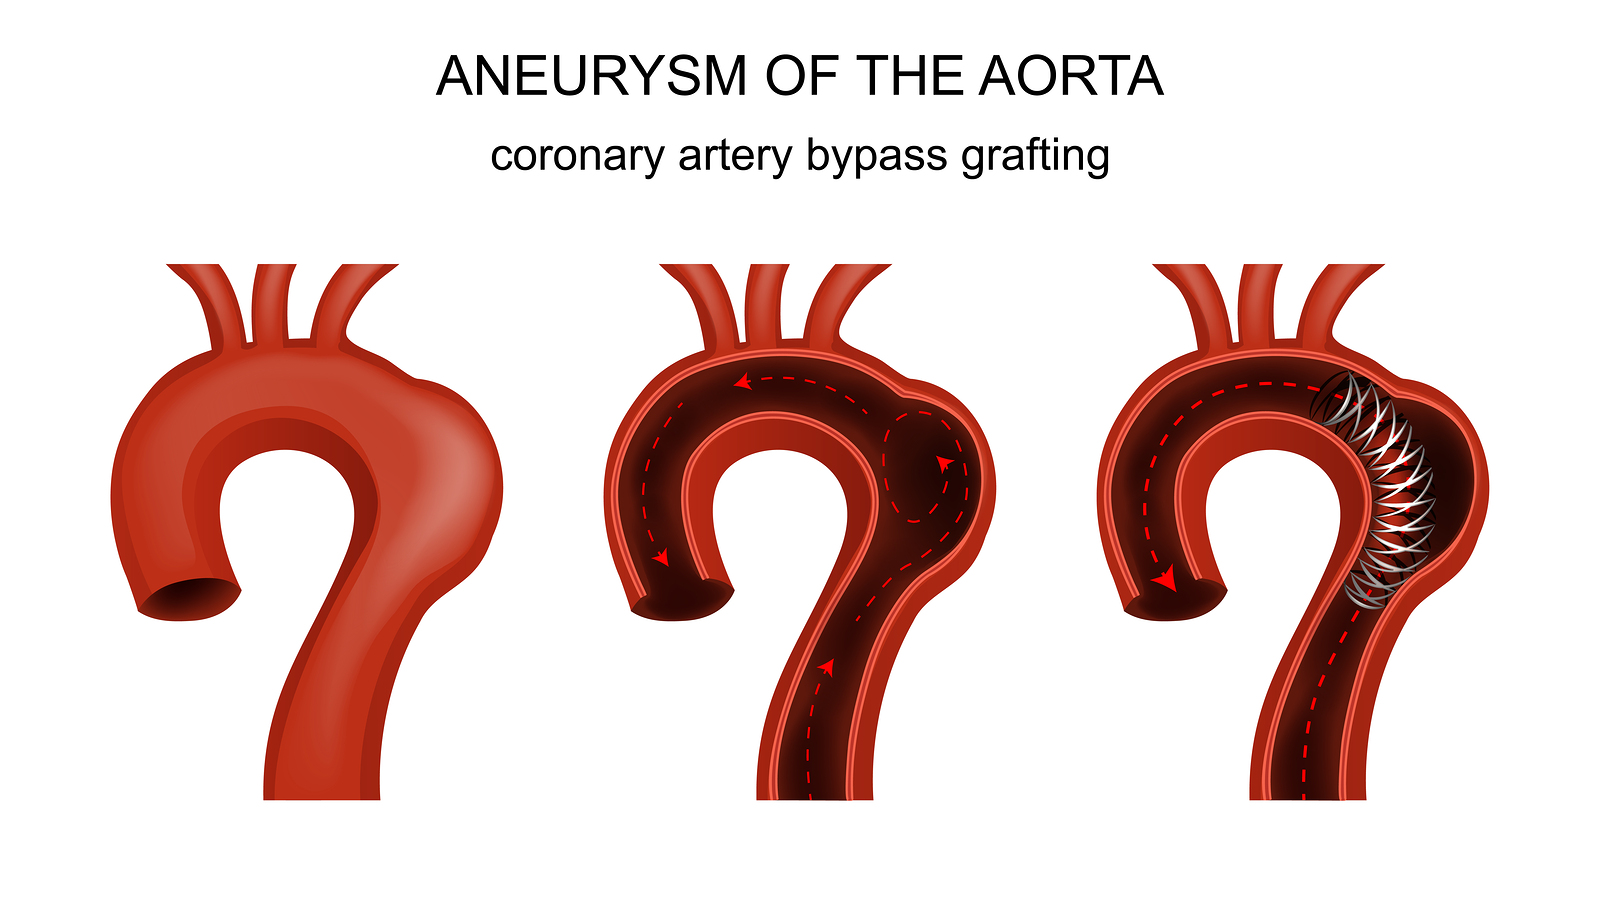 coronary artery bypass graft pulmonary complications nursing essay Comparison of recovery patterns for patients undergoing coronary artery bypass grafting and minimally invasive direct coronary artery bypass in the early discharge period.